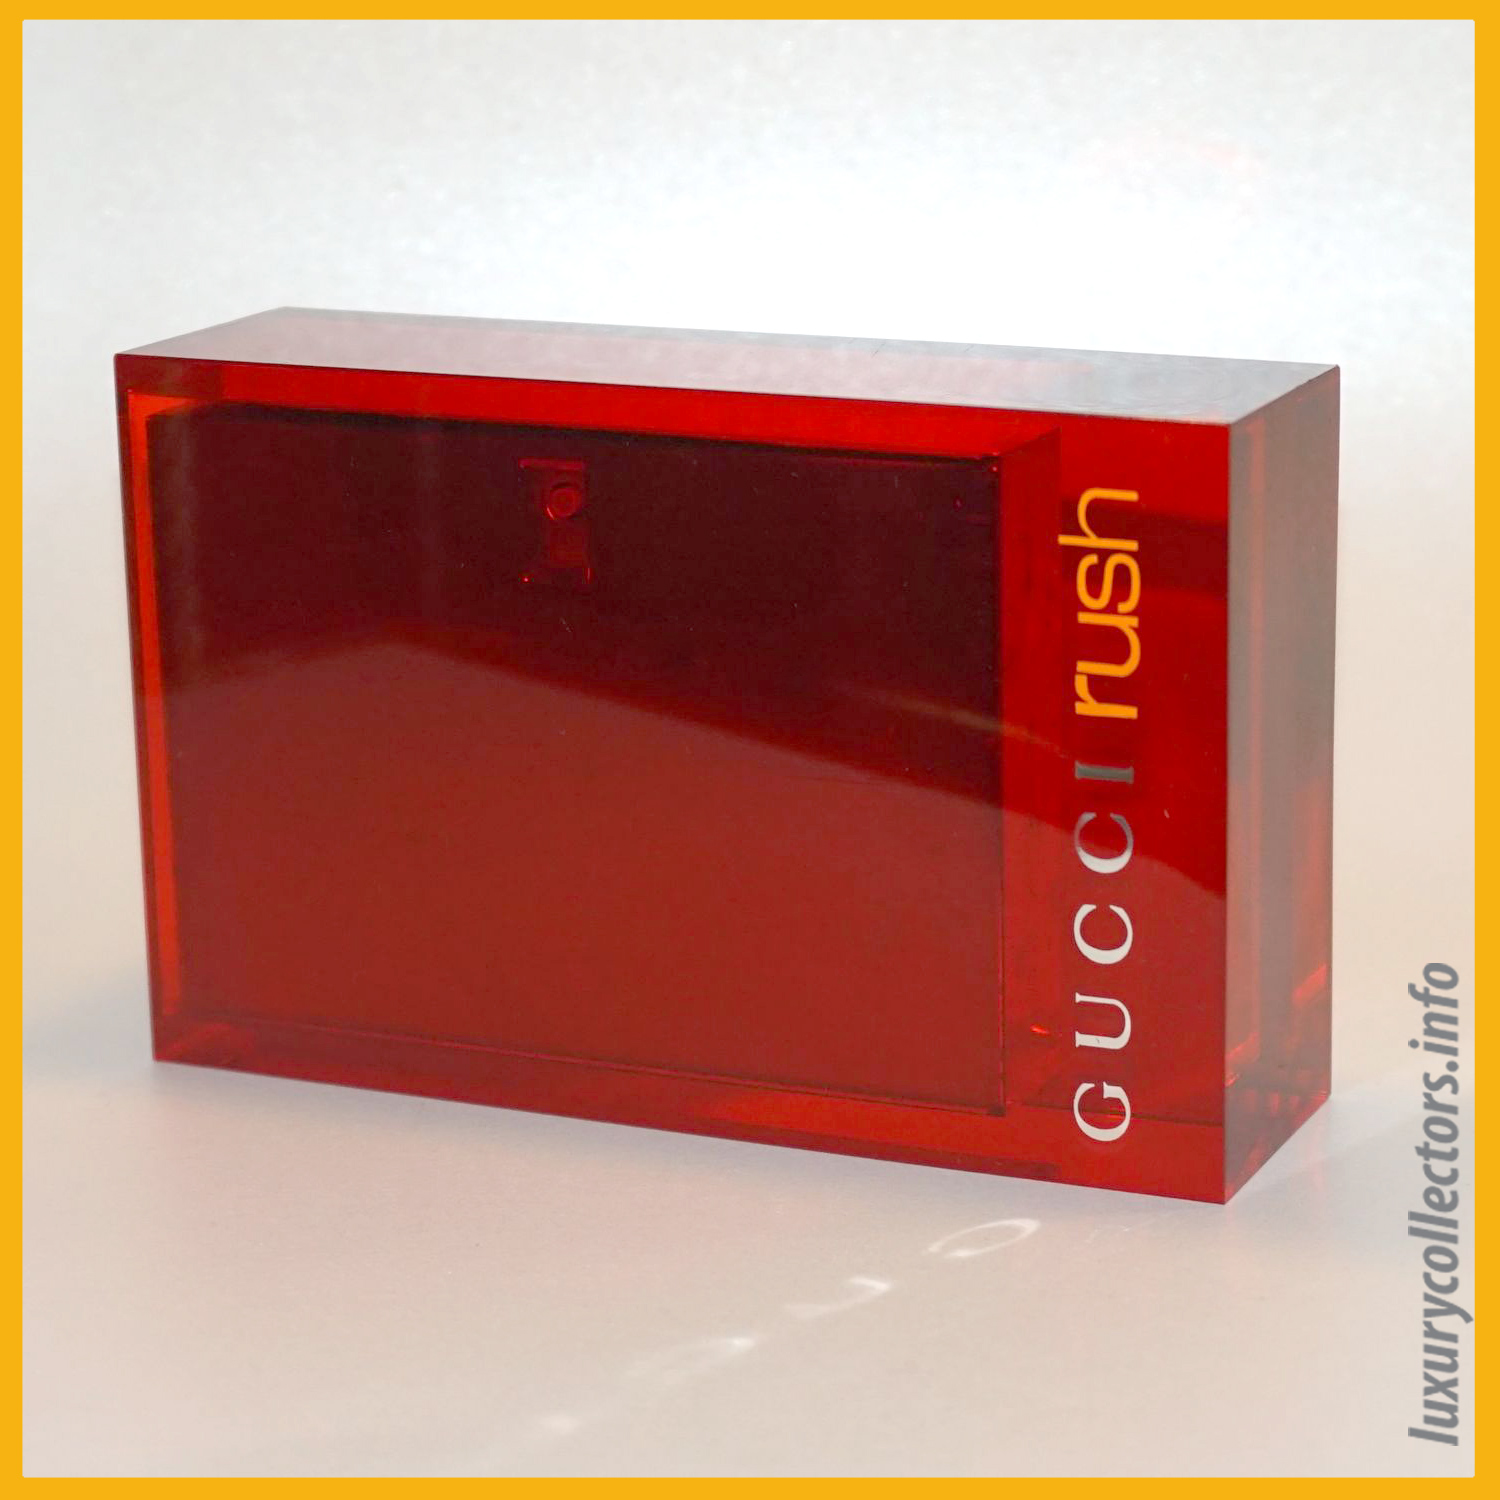 Gucci Tom Ford Italy Rush Perfume Bottle Limited Edition Millennium Parfum 1999 2000 Metal Container Acrylic Sleeve Closed Inside